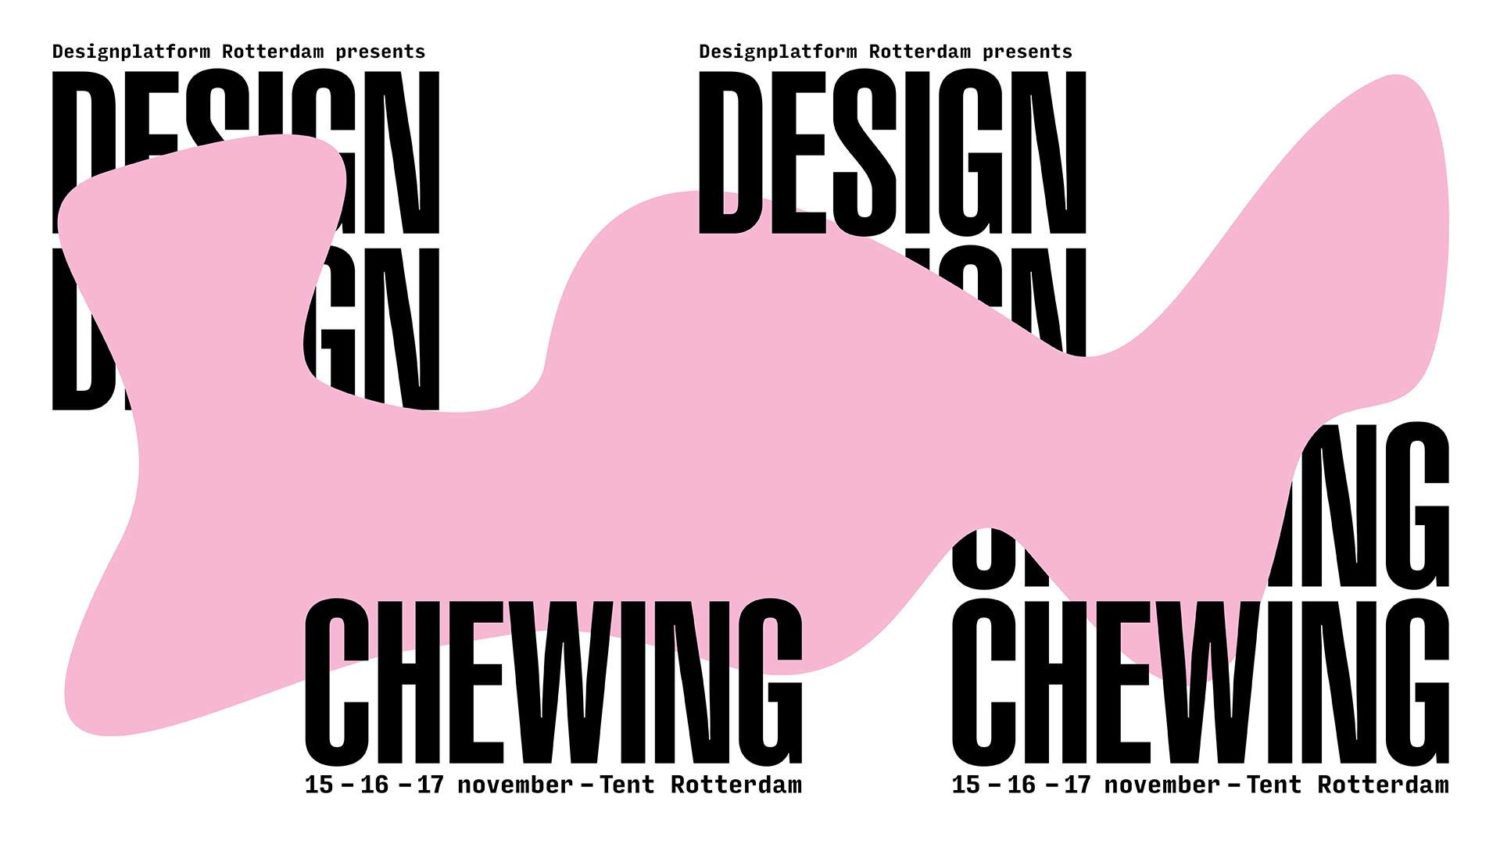 TENT Welcomes: Design chewing festival